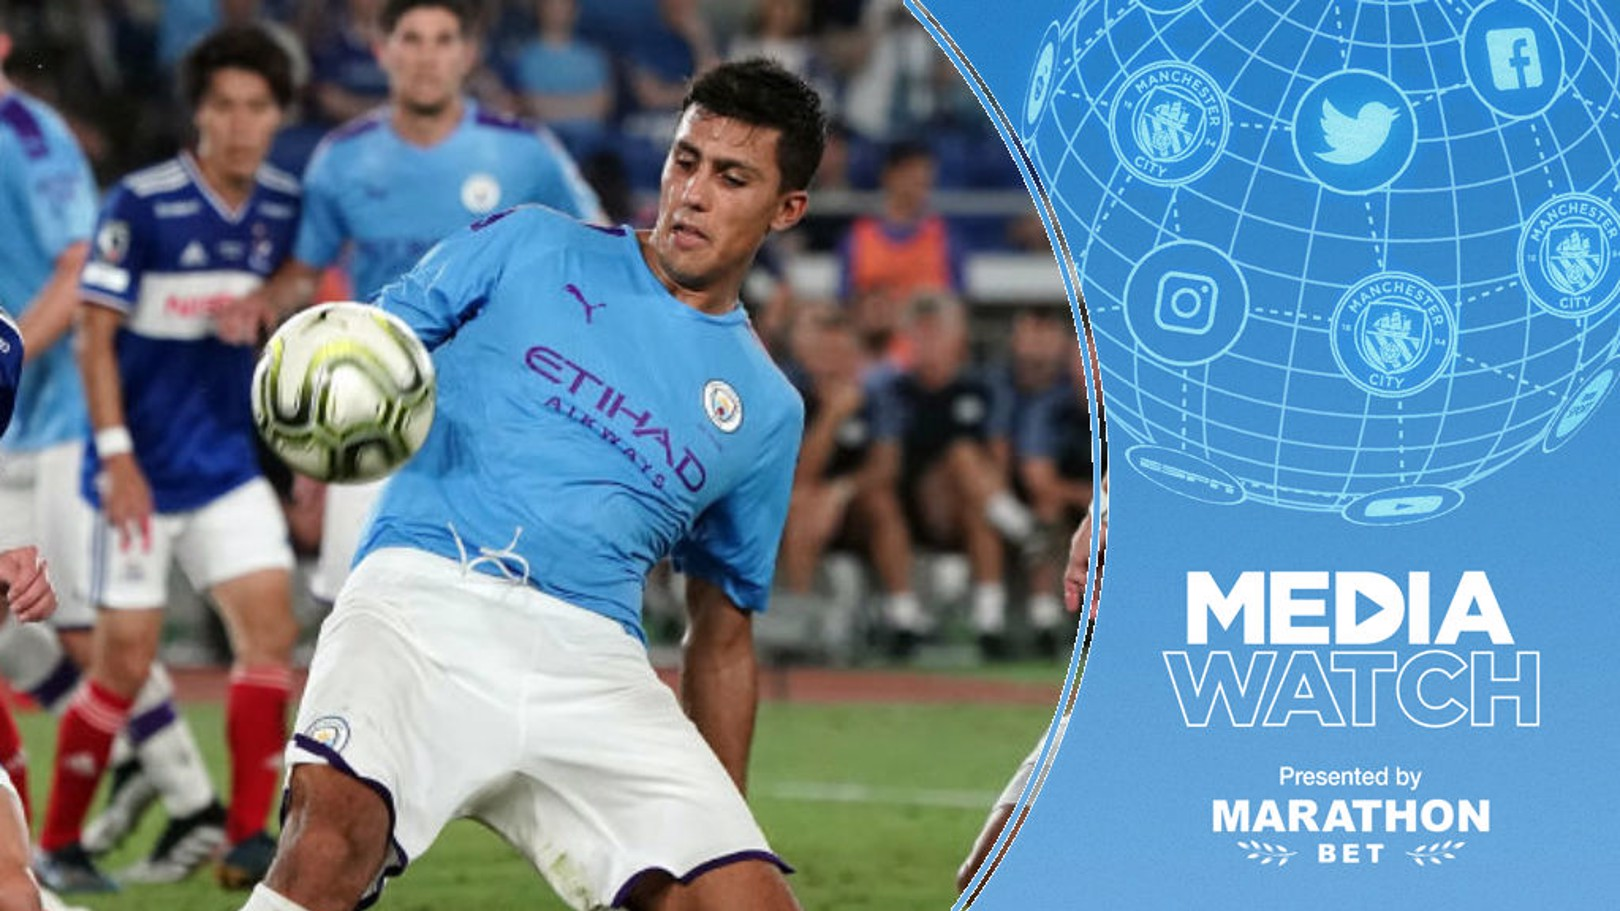 Media Watch: 'Rodri the bargain of the summer?'